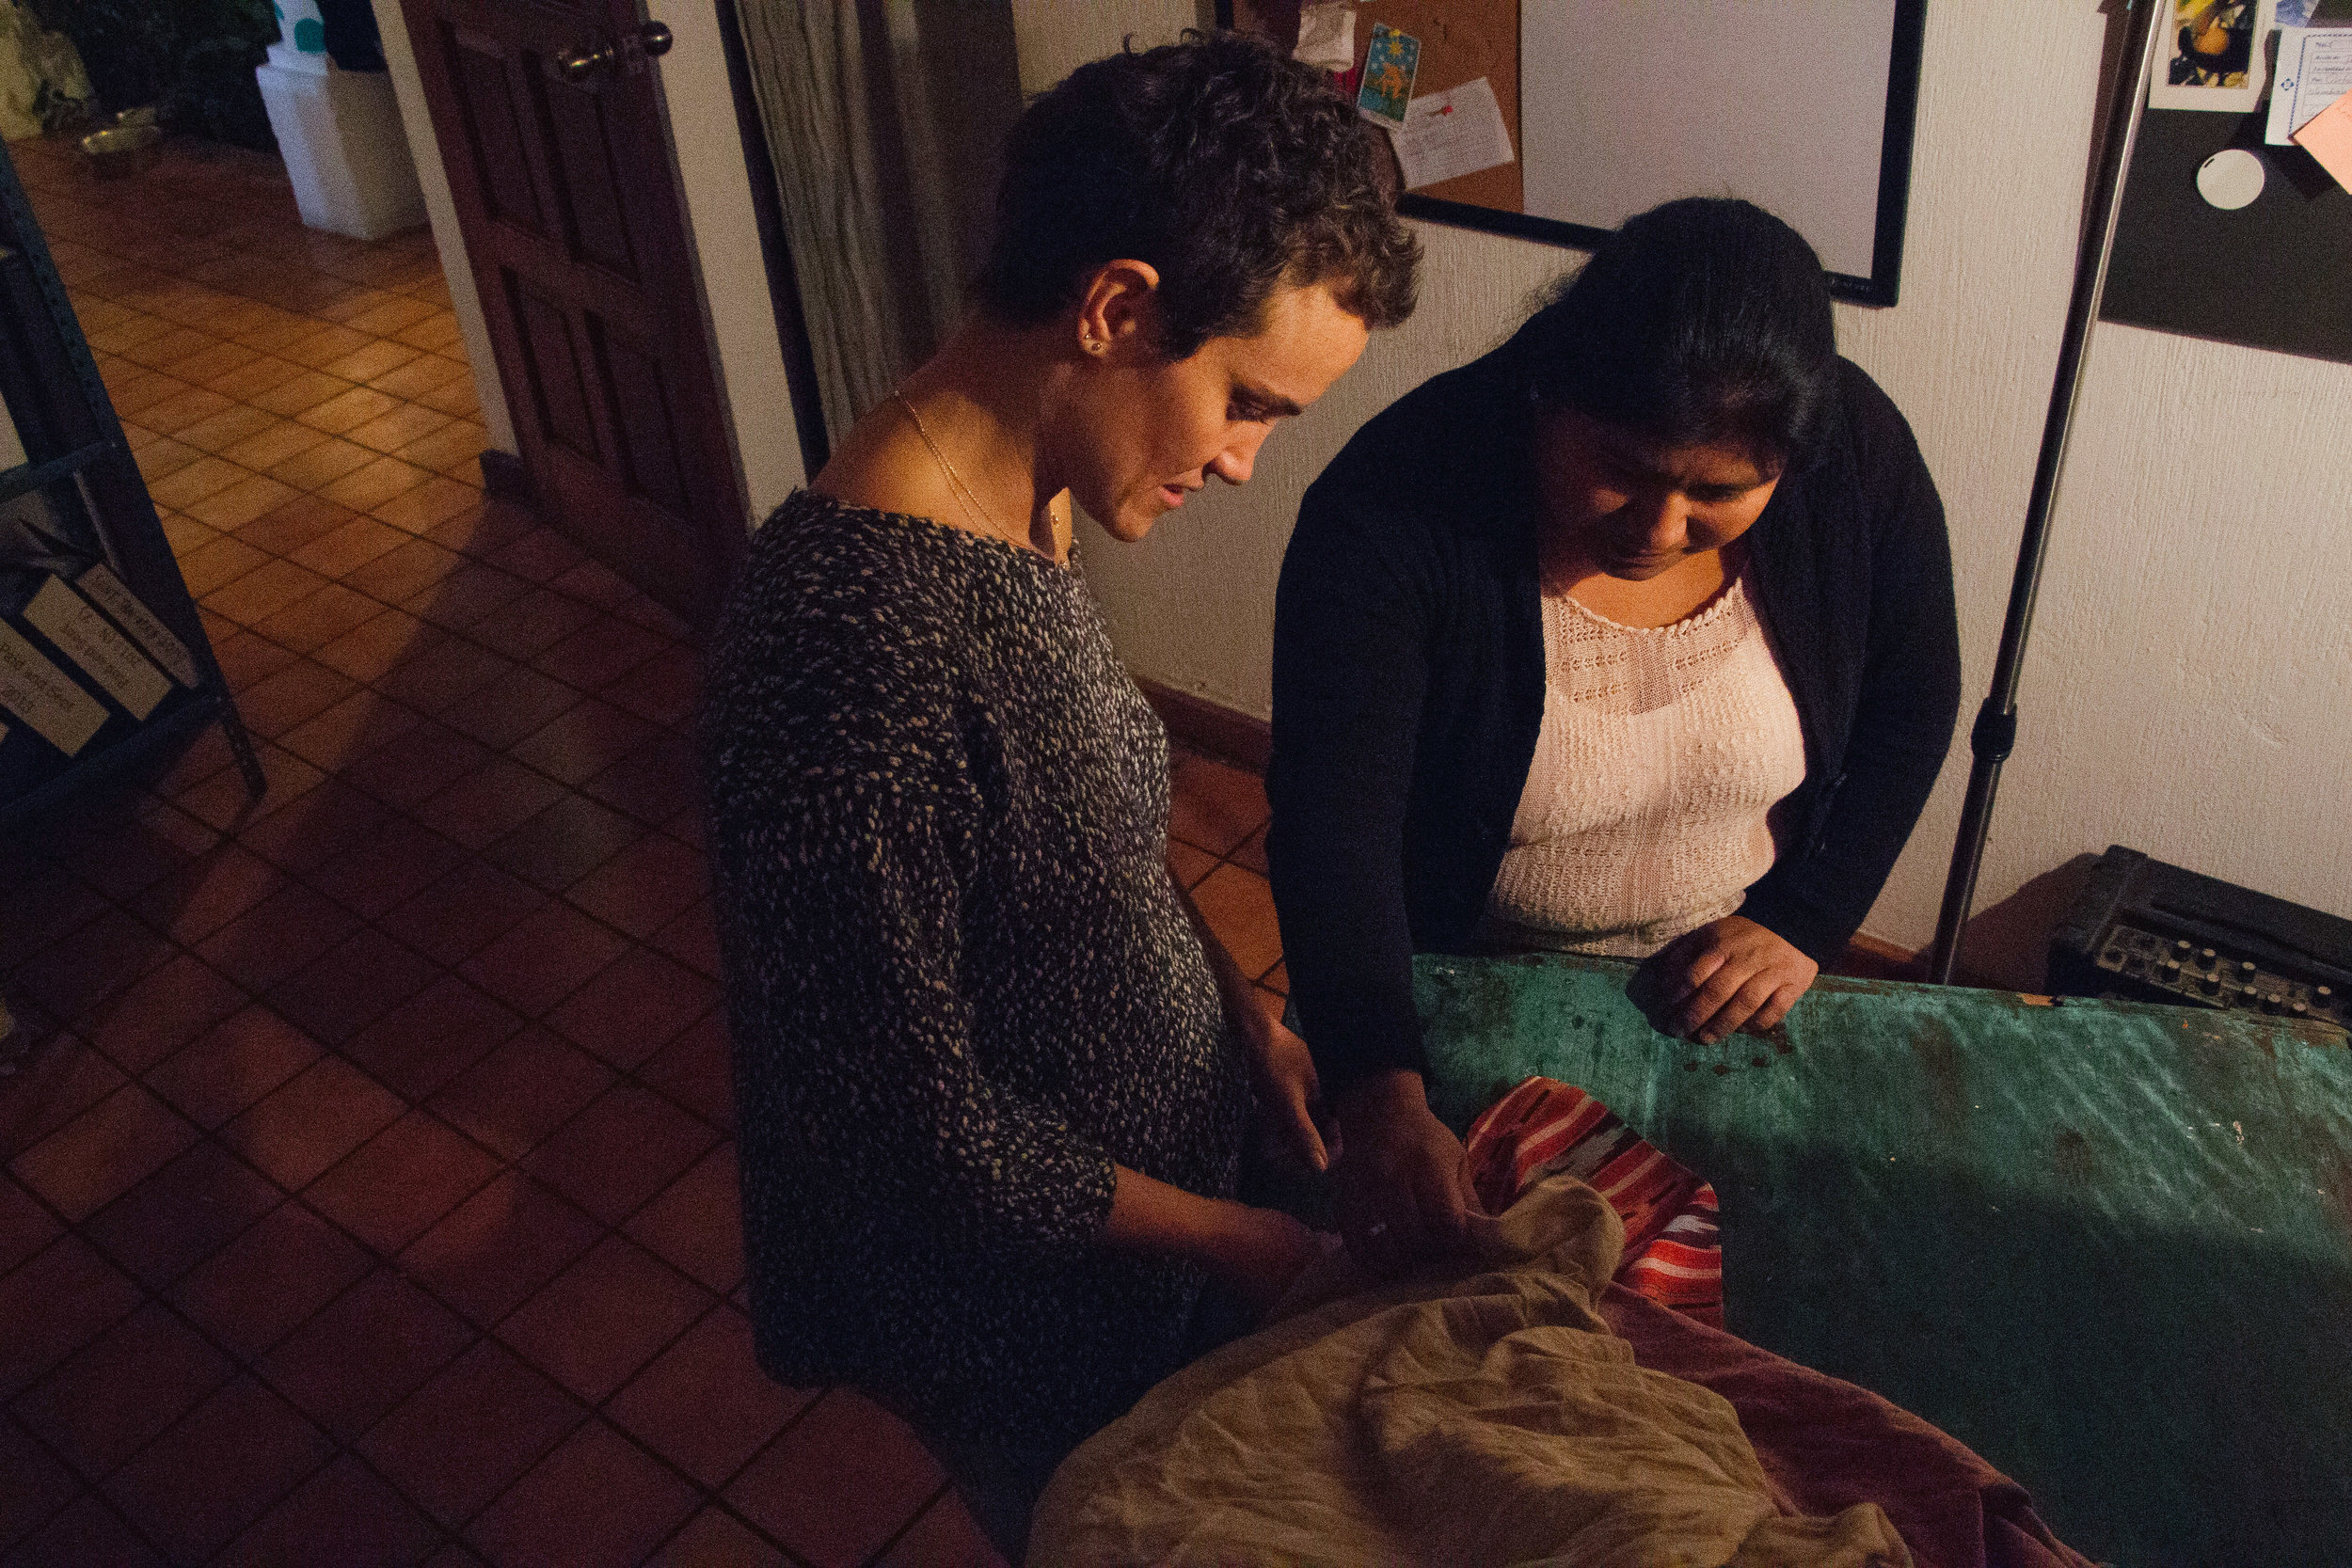 "GÓMEZ AND BERCOVICI COLLABORATE ON AN EVENING WORK SESSION TO GO OVER TEXTILE DESIGNS IN BERCOVICI'S OFFICE AT THE STELA 9 AIRBNB IN ANTIGUA, GUATEMALA ON JAN. 13. ""SHE TELLS ME WHAT EVERYTHING COSTS AND I NEVER FIGHT HER ON IT,"" BERCOVICI SAYS."